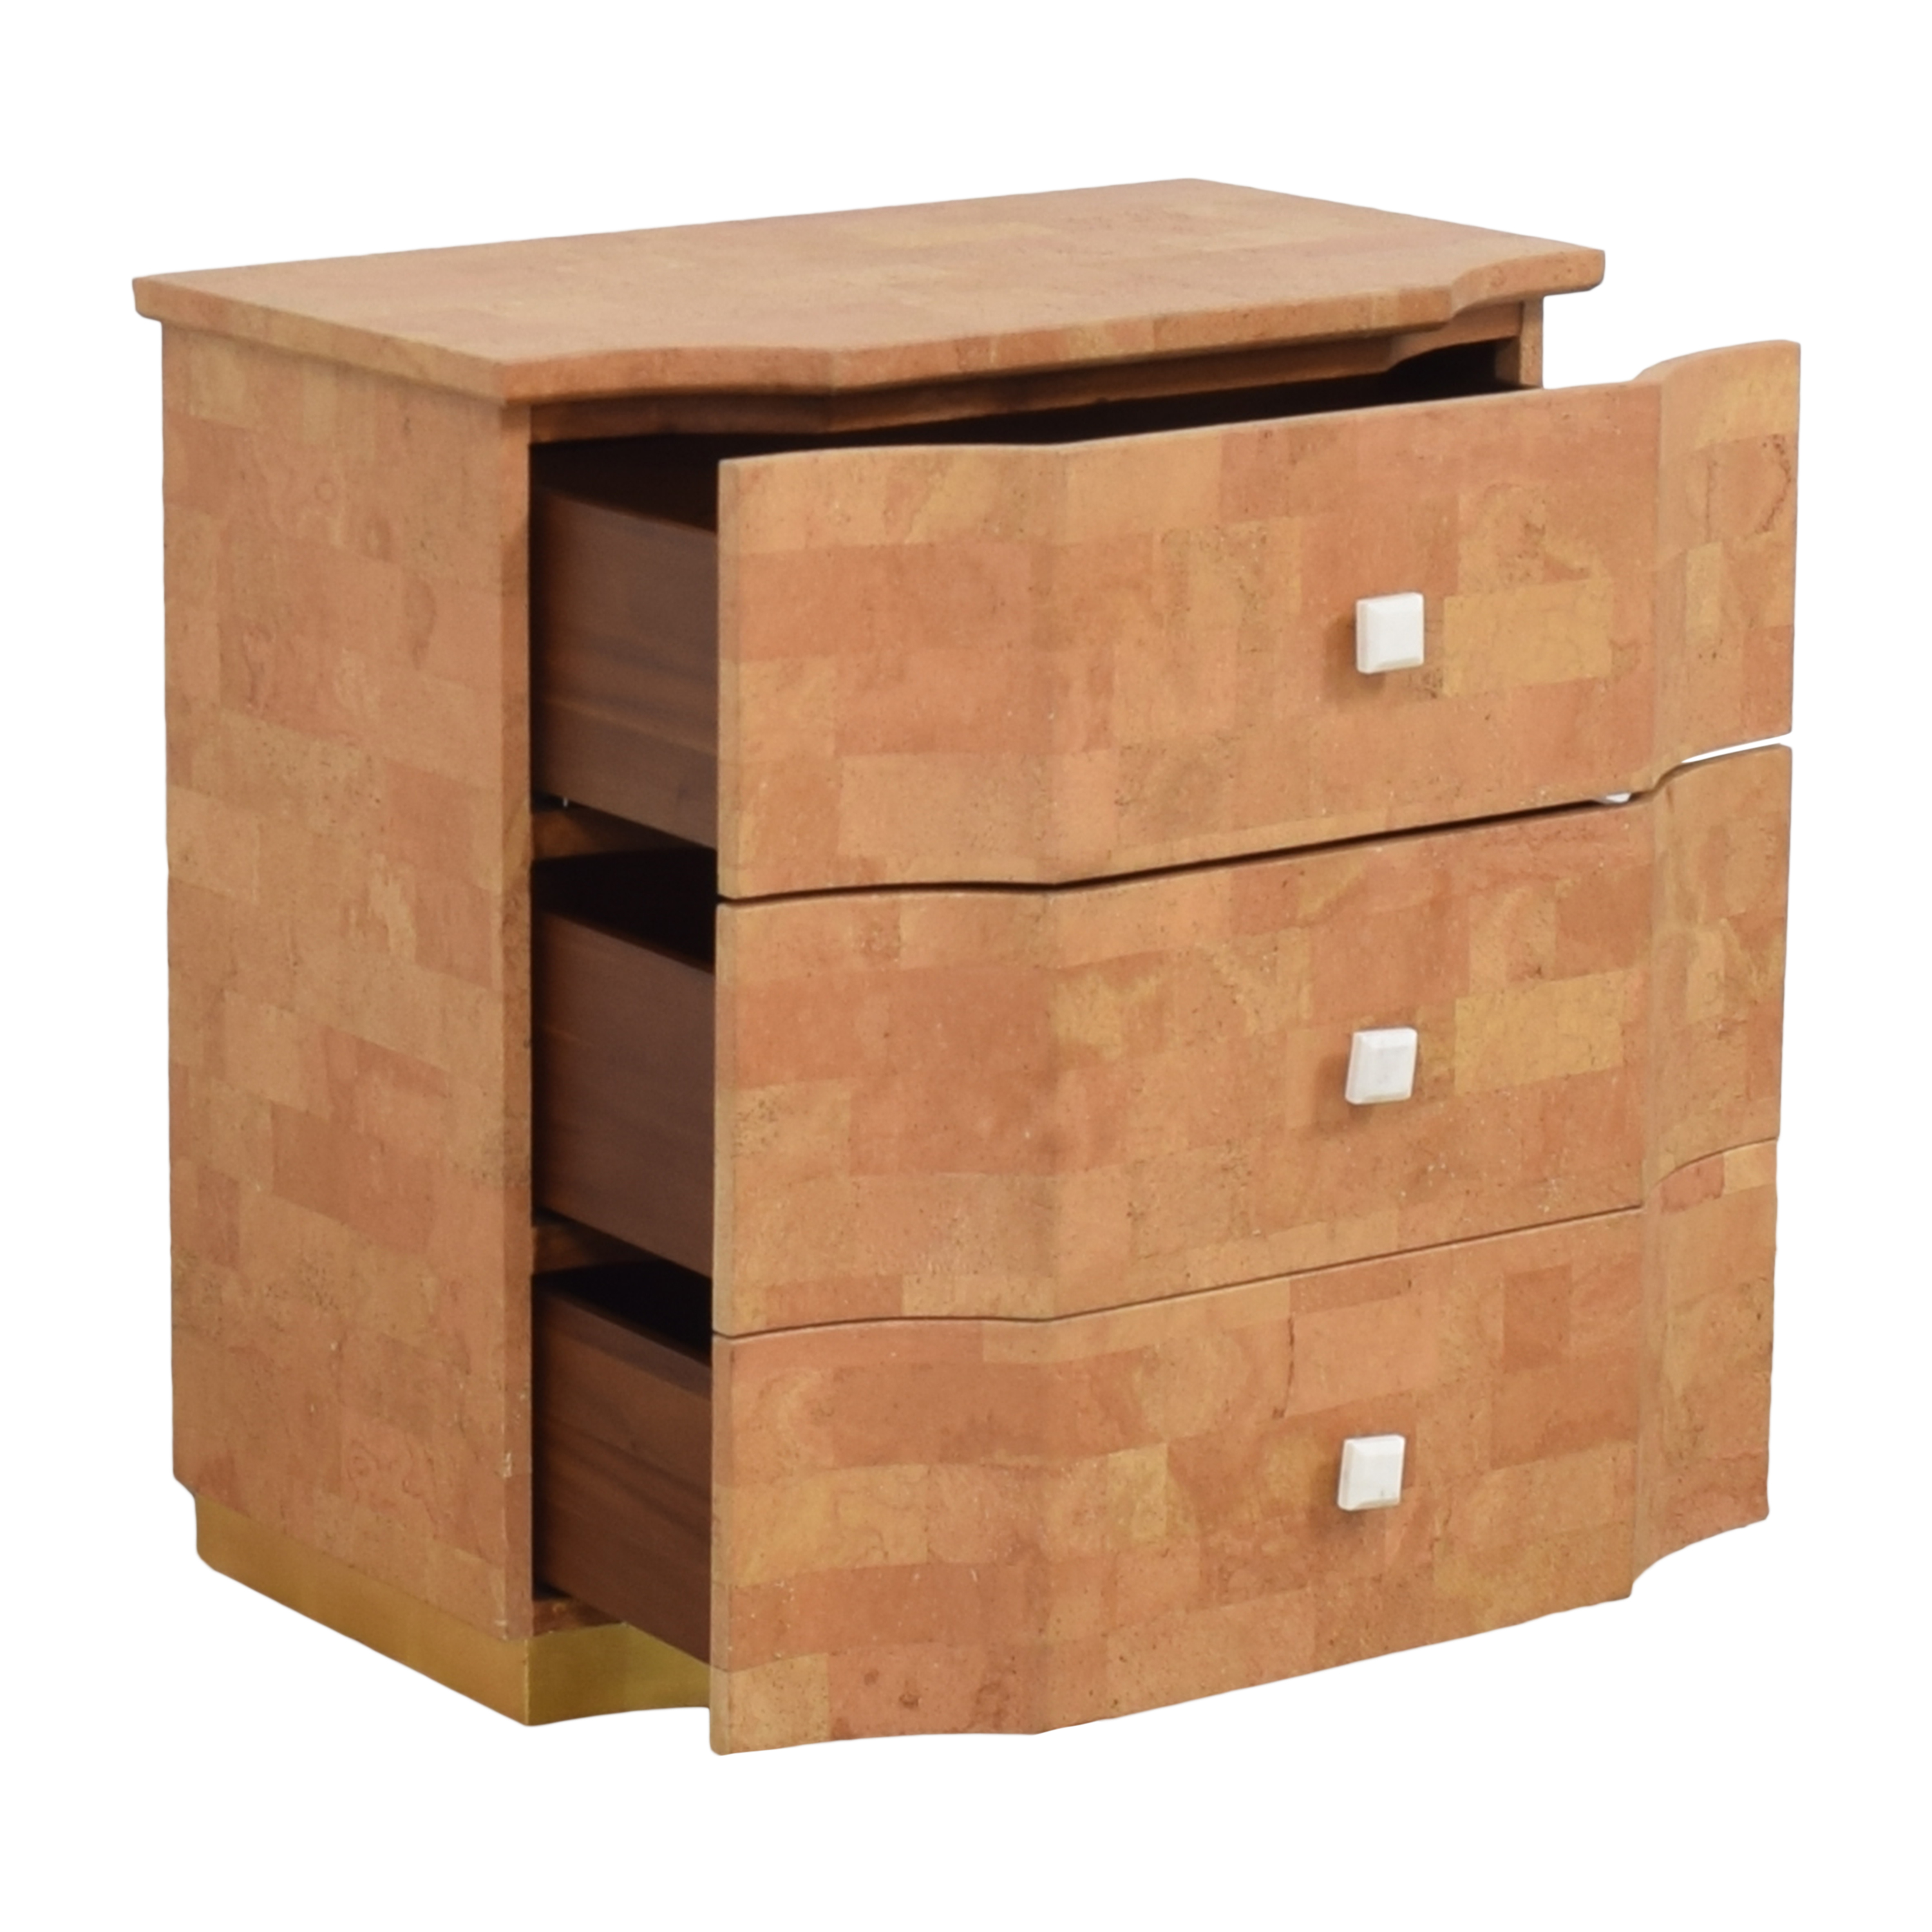 Currey and Company Currey and Company Renee Chest price